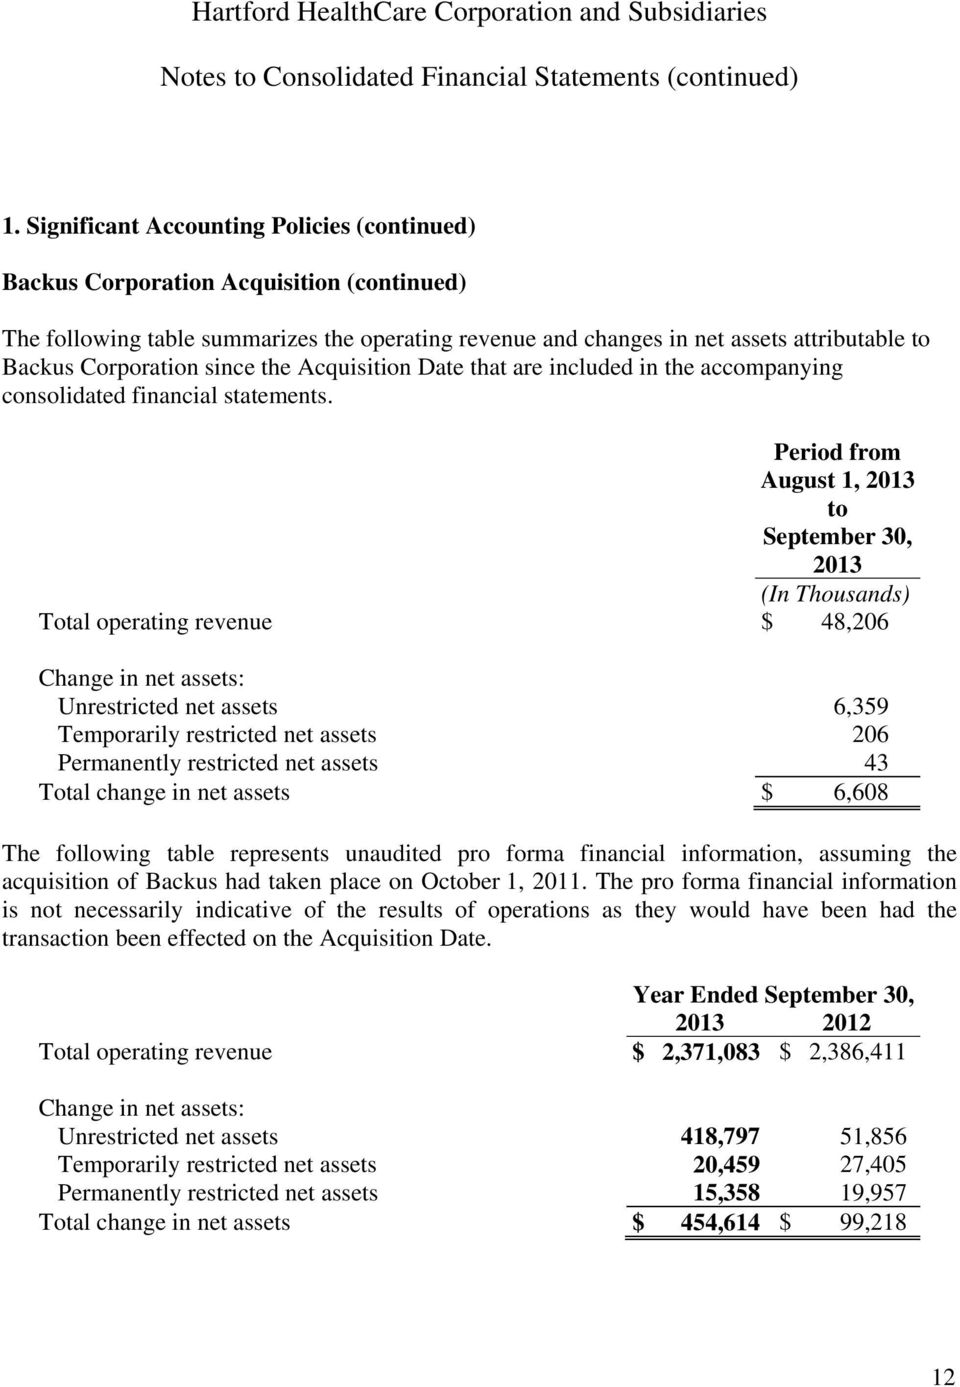 Period from August 1, 2013 to September 30, 2013 (In Thousands) Total operating revenue $ 48,206 Change in net assets: Unrestricted net assets 6,359 Temporarily restricted net assets 206 Permanently